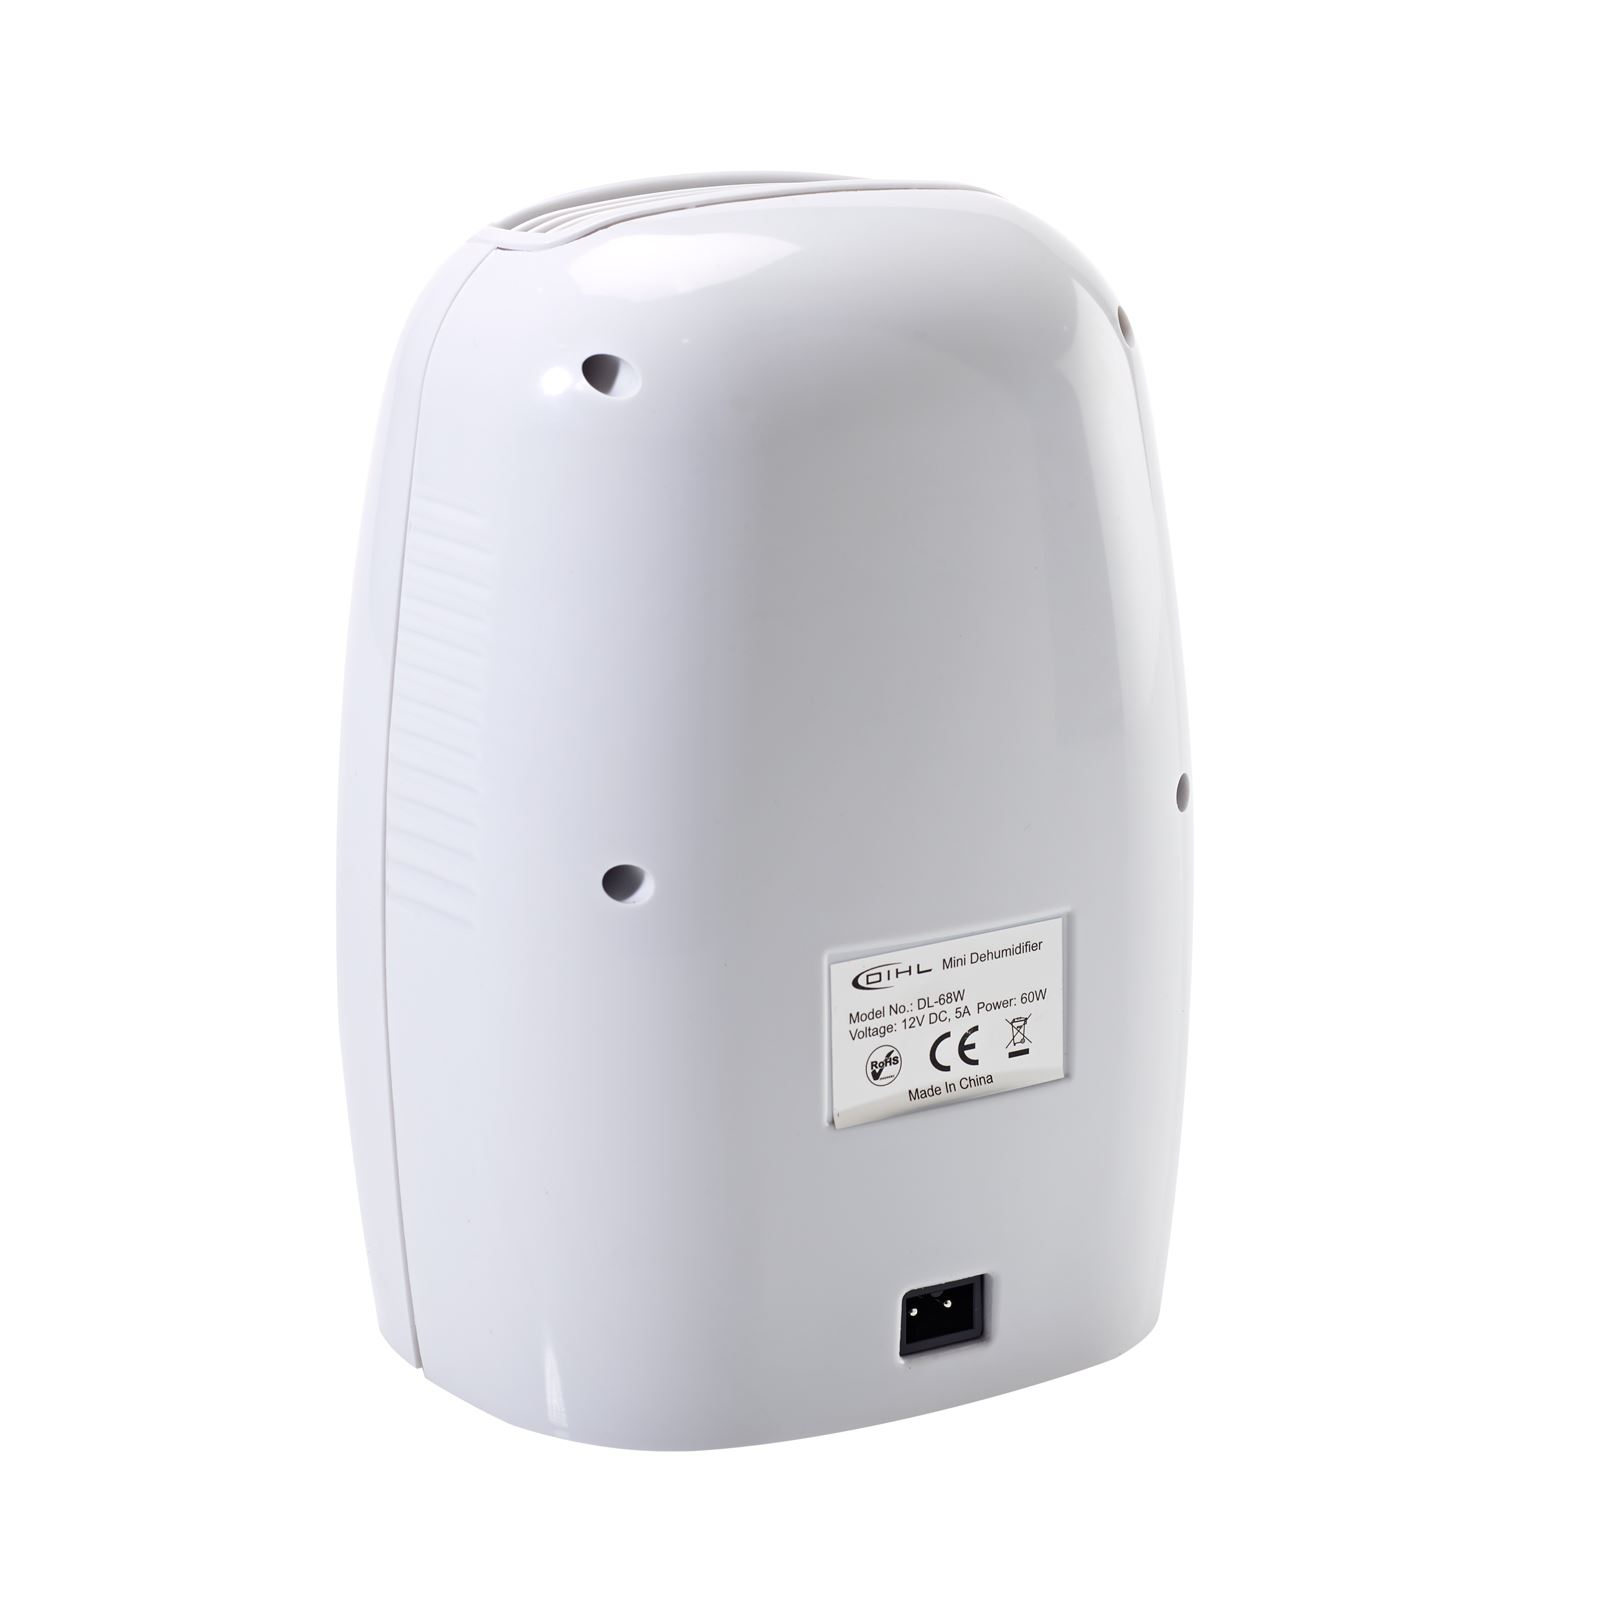 Small Dehumidifier For Bedroom Dehumidifier For Bathroom Buckeyebridecom